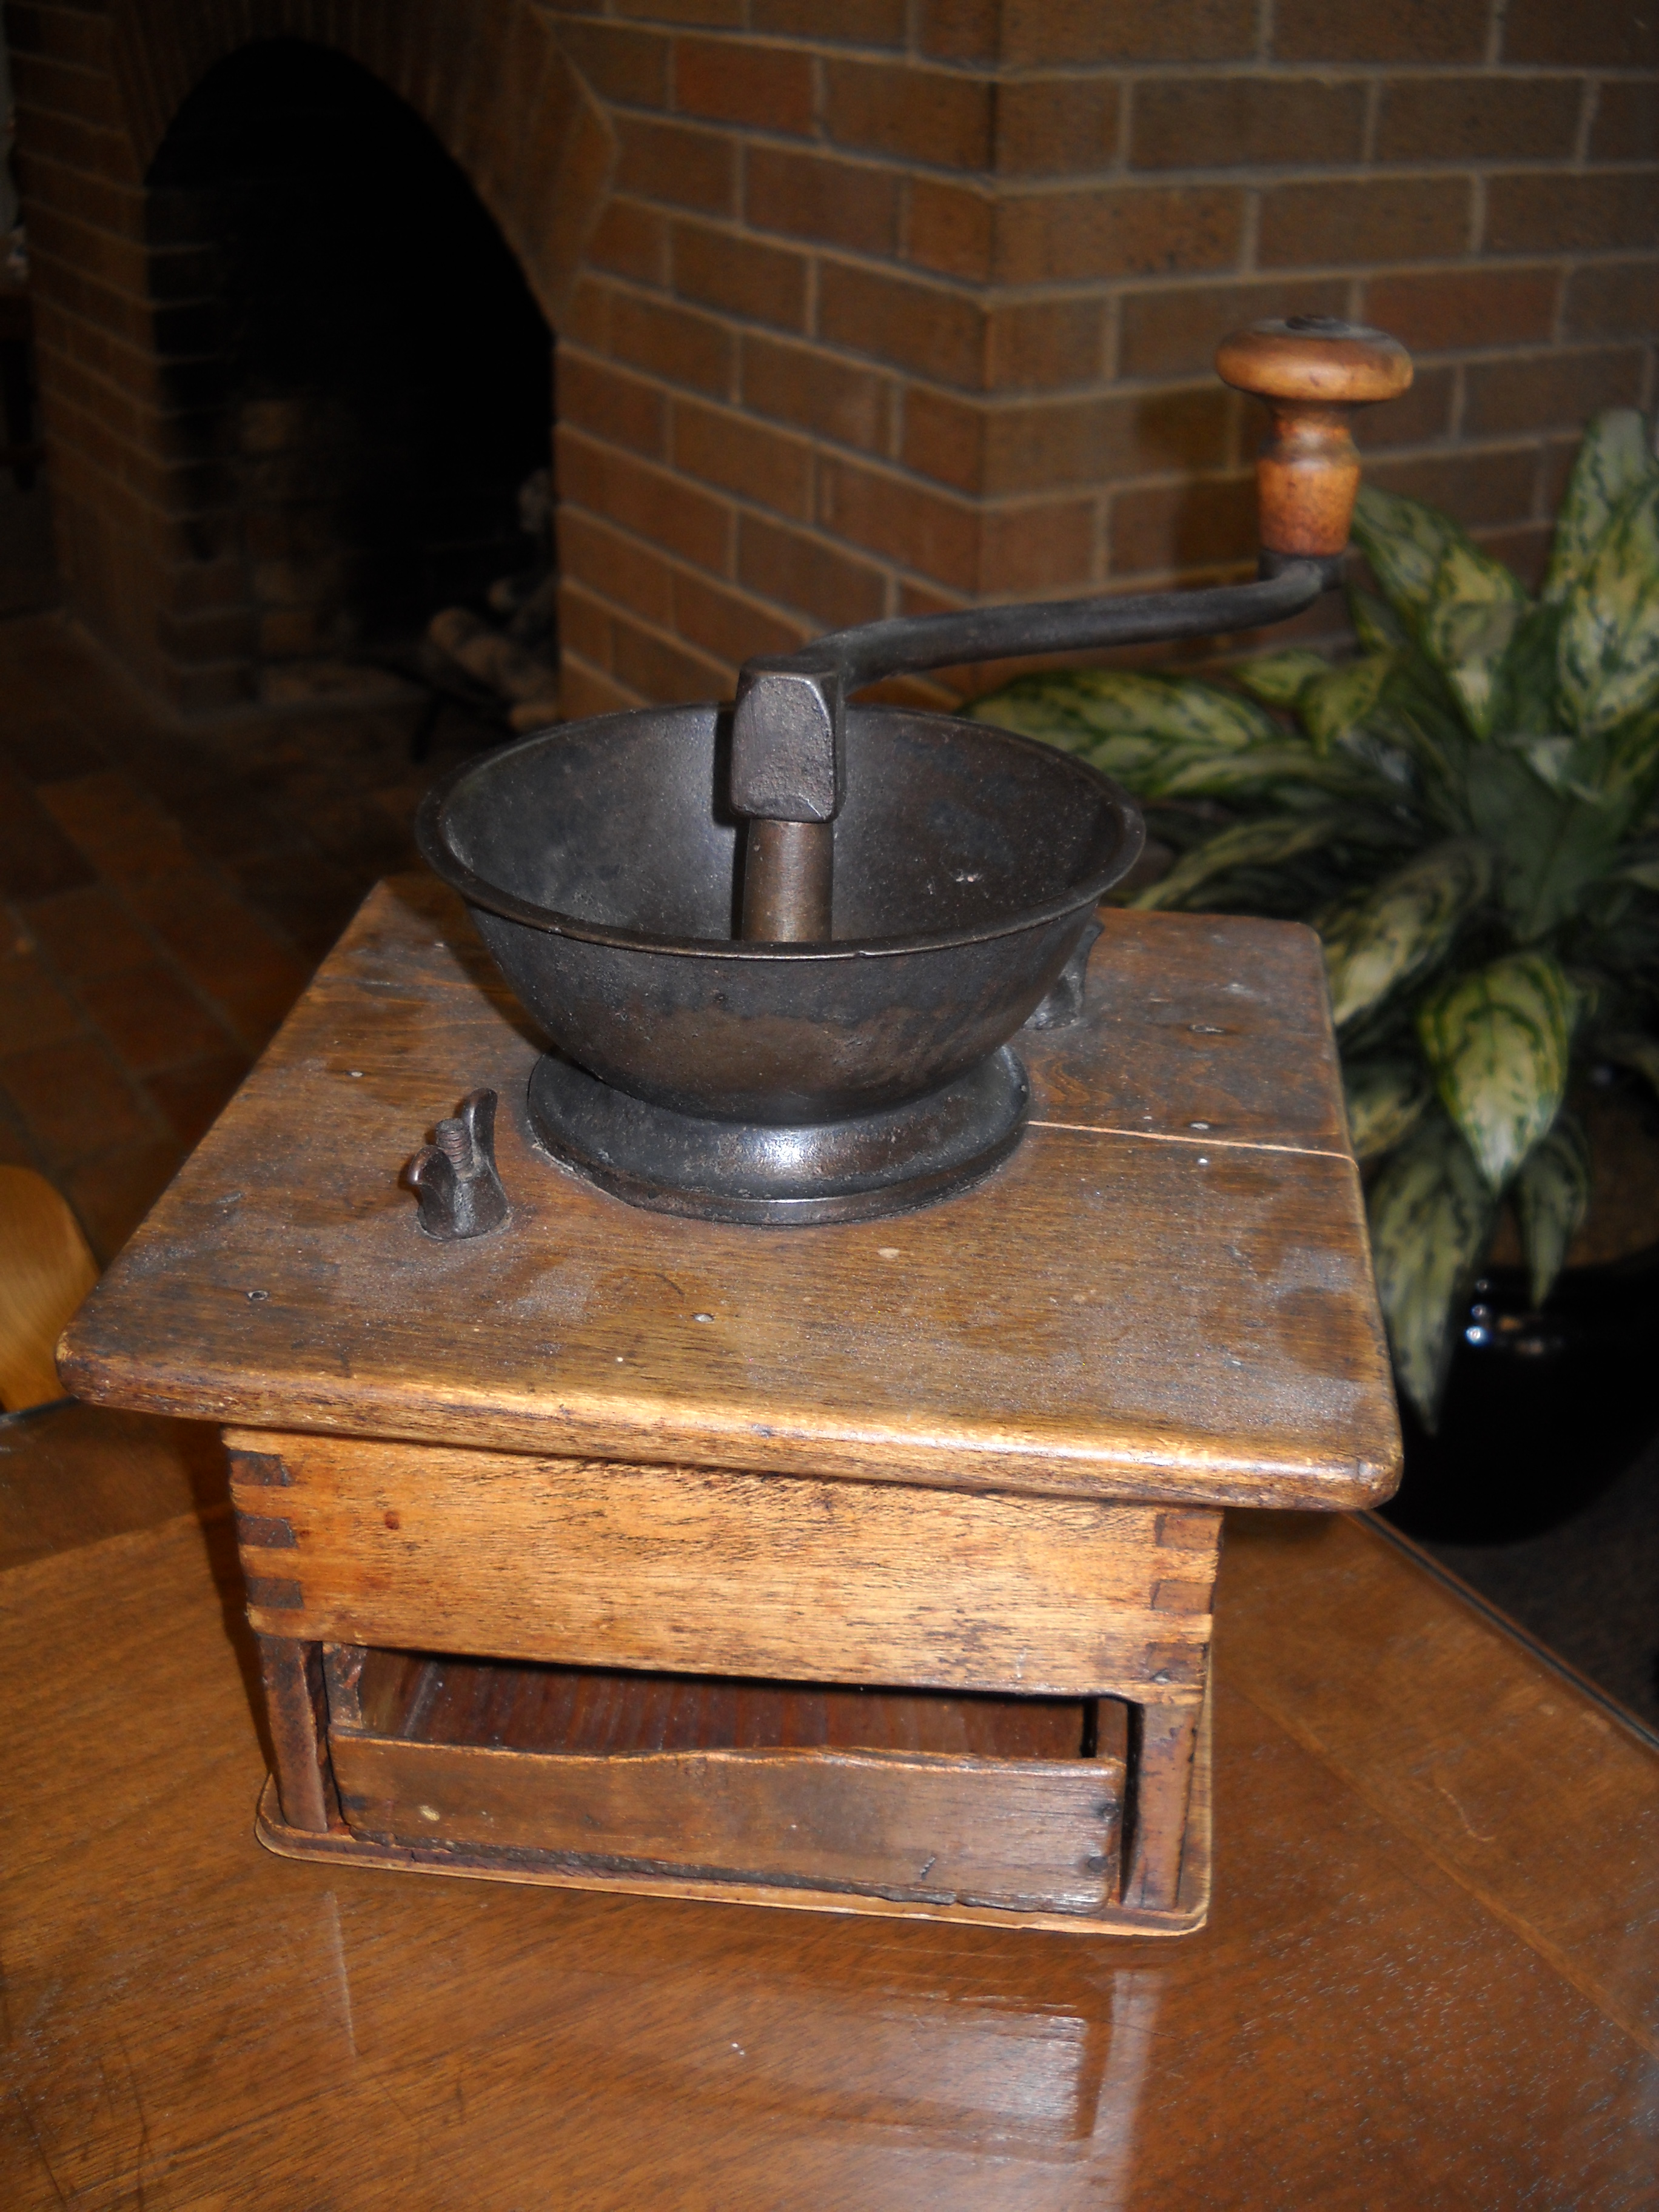 Coffee Grinder From Late 1800's